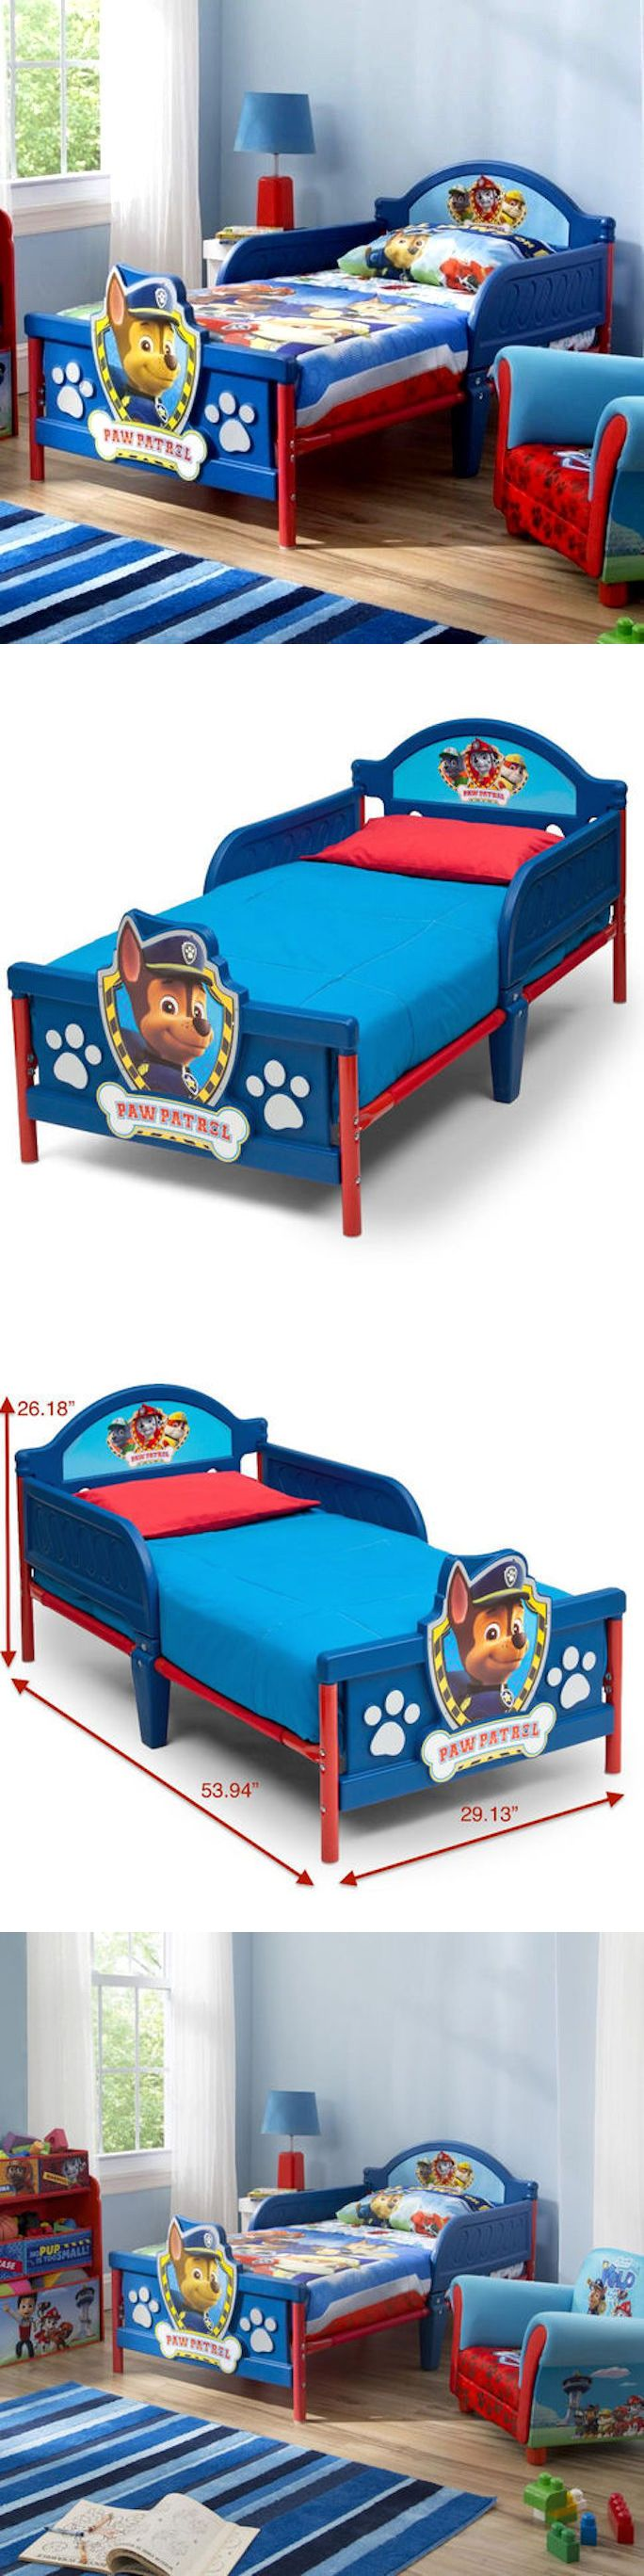 Other Nursery Bedding 20421: Paw Patrol Toddler Bed Delta Furniture Boys Junior Cot 3D Chase -> BUY IT NOW ONLY: $109 on eBay!